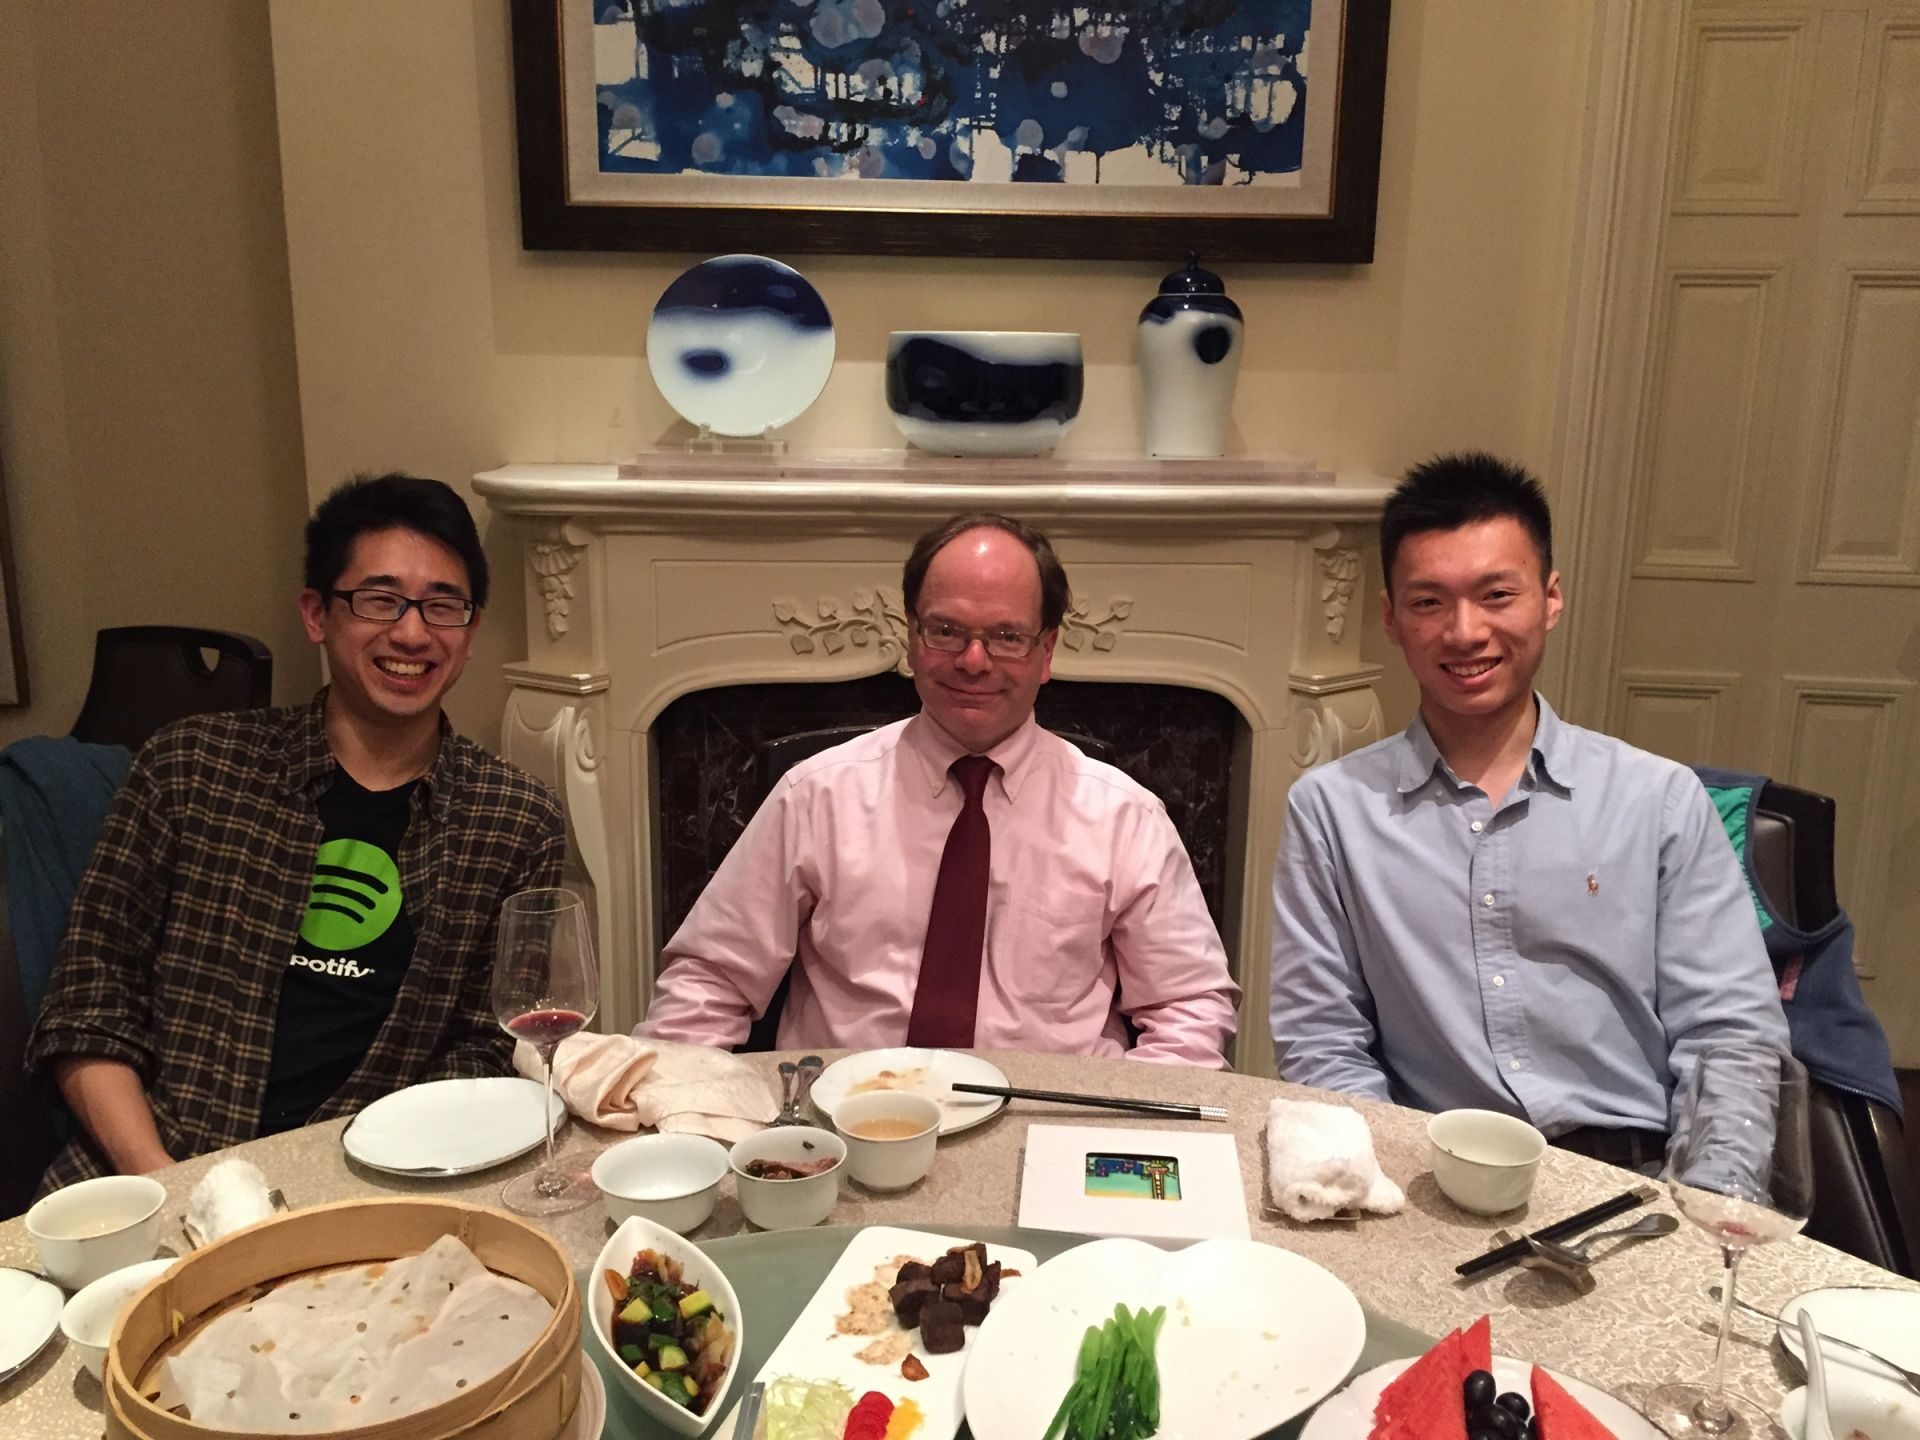 While spending the spring term teaching in Shanghai, Teacher Andrew Caglieris caught up with Stanton Wong '07 and Harry Zhang '14 for dinner